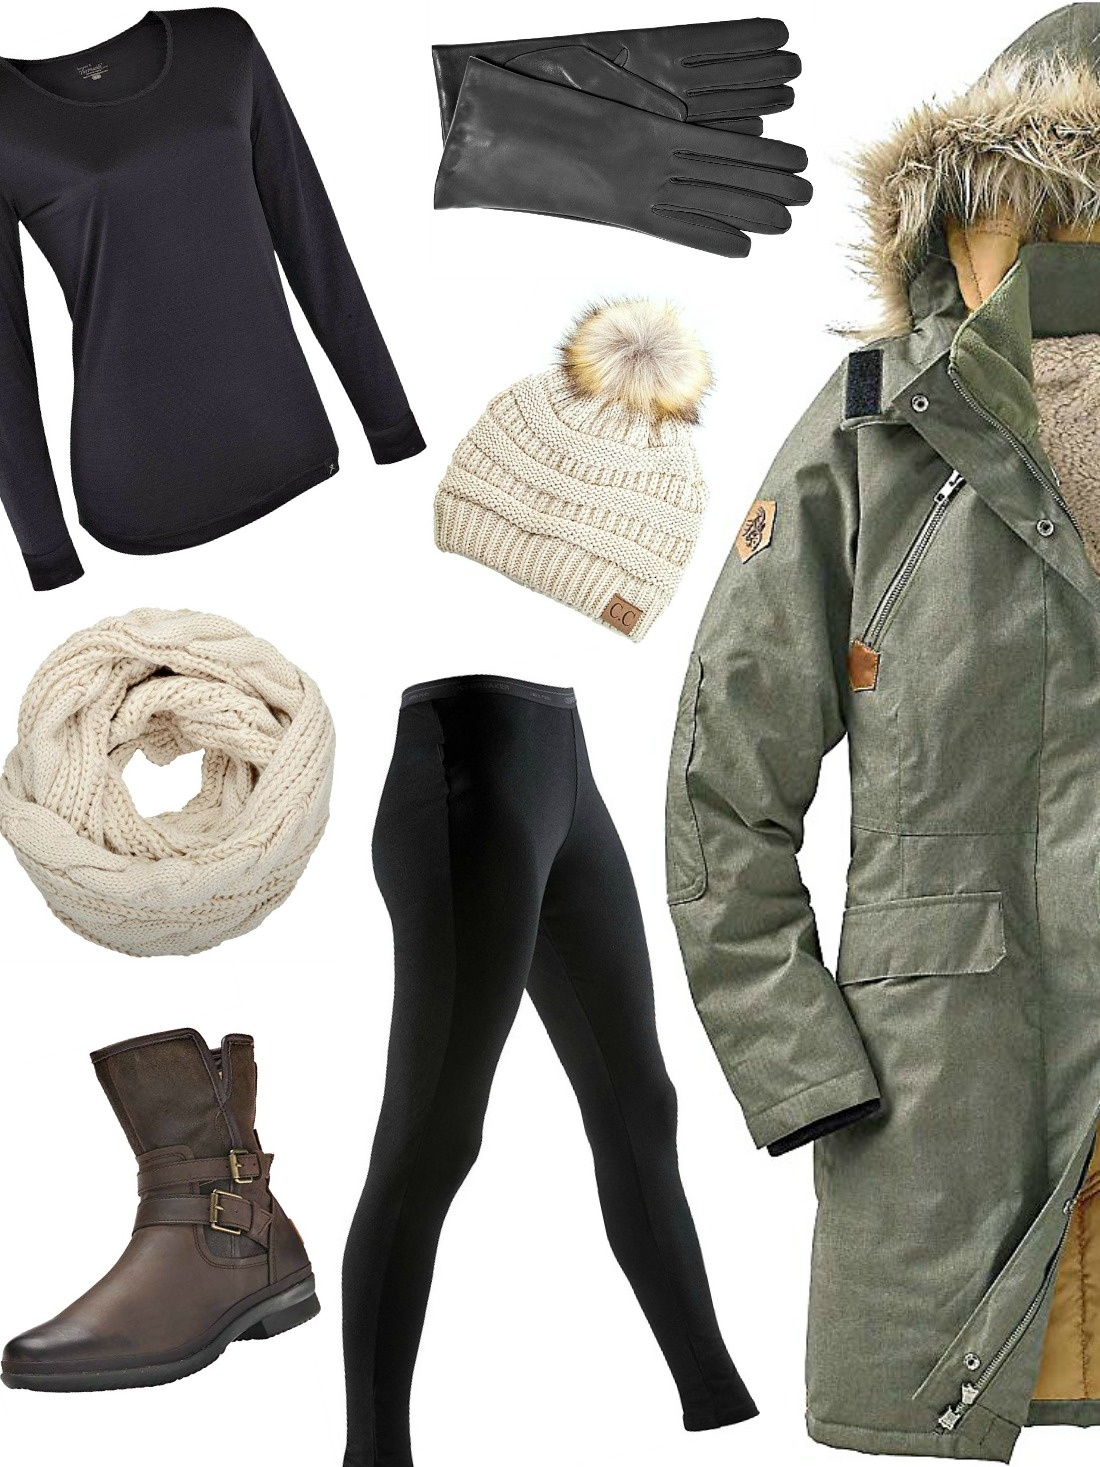 Are you ready to tackle the cold winter weather? Step up your gear game with these winter fashion essentials!